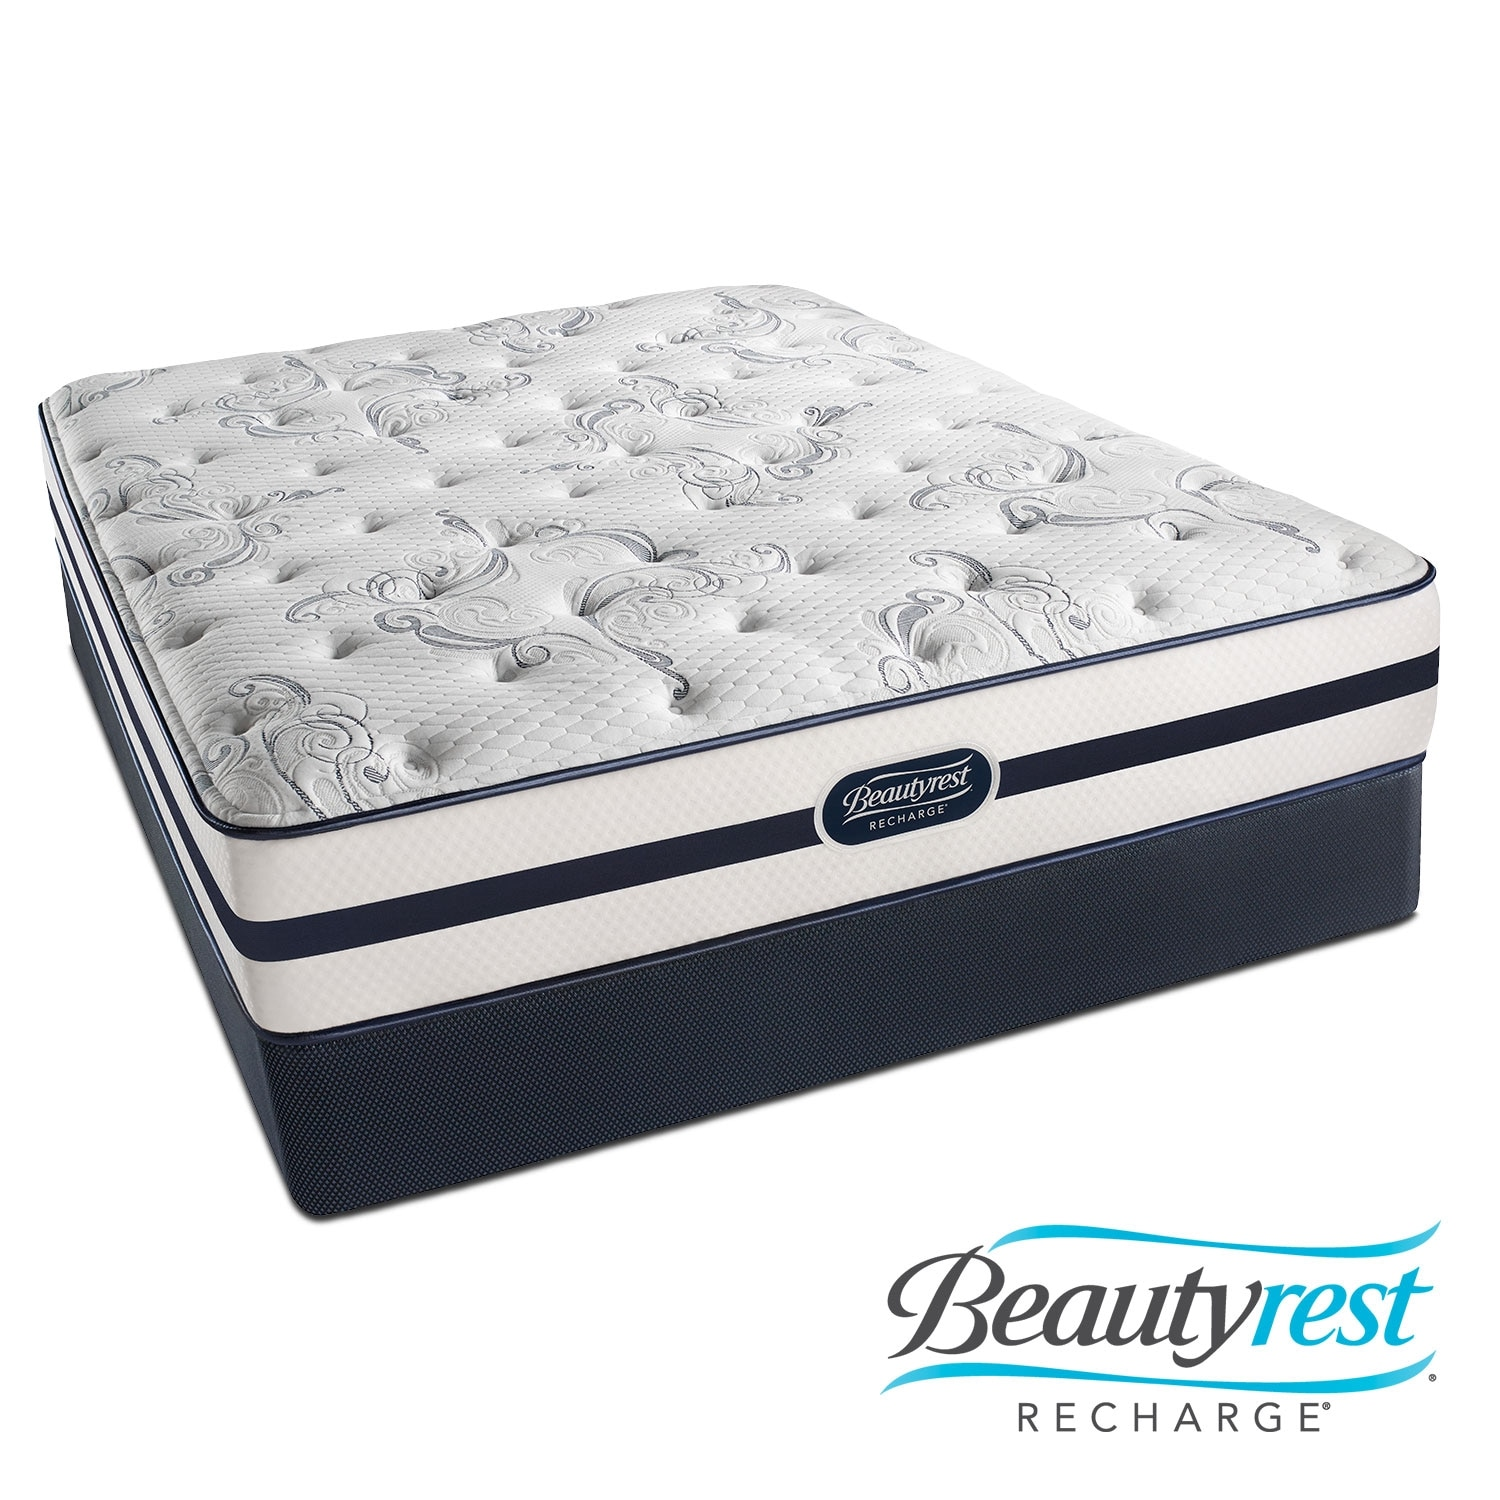 Mattresses and Bedding - Justine Plush King Mattress and Split Foundation Set